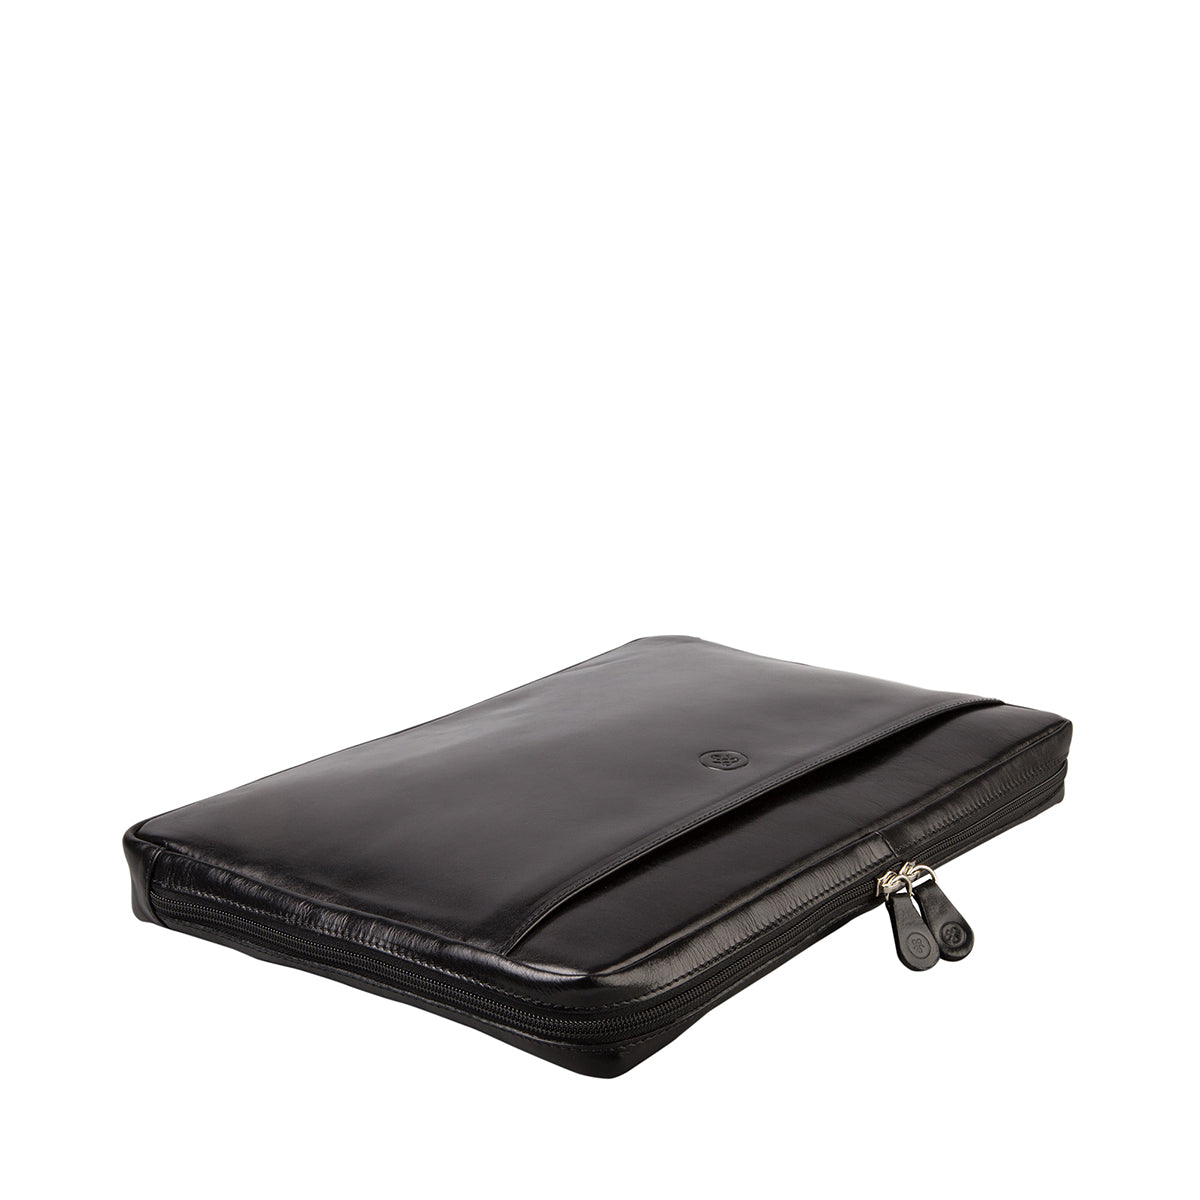 Image 4 of the 'Bovino' Black Veg-Tanned Leather 14 inch Laptop Case